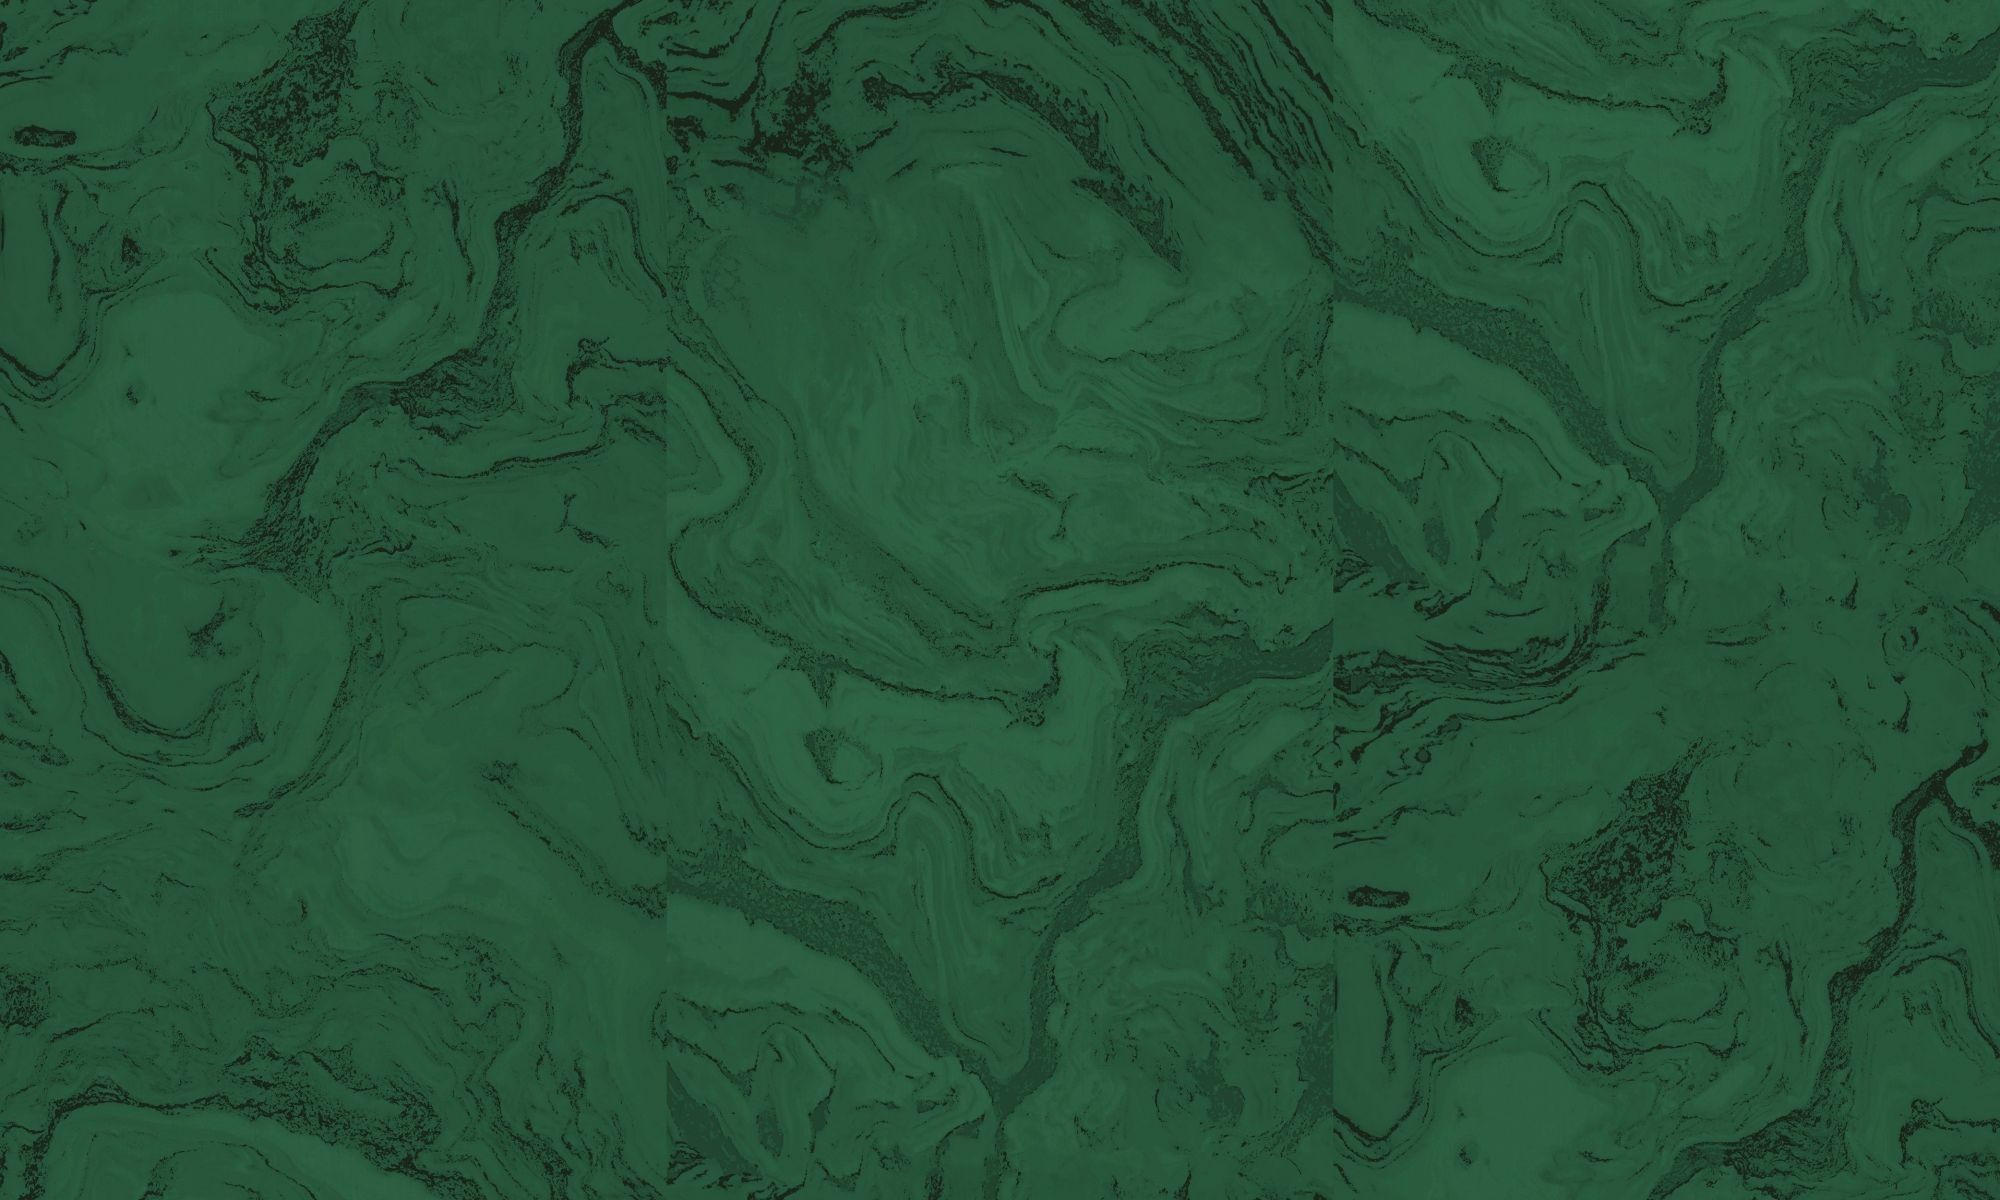 Res: 2000x1200, Slytherin iPhone Wallpaper New Green Marble Wallpaper Mural by Sarah  Sherman Samuel